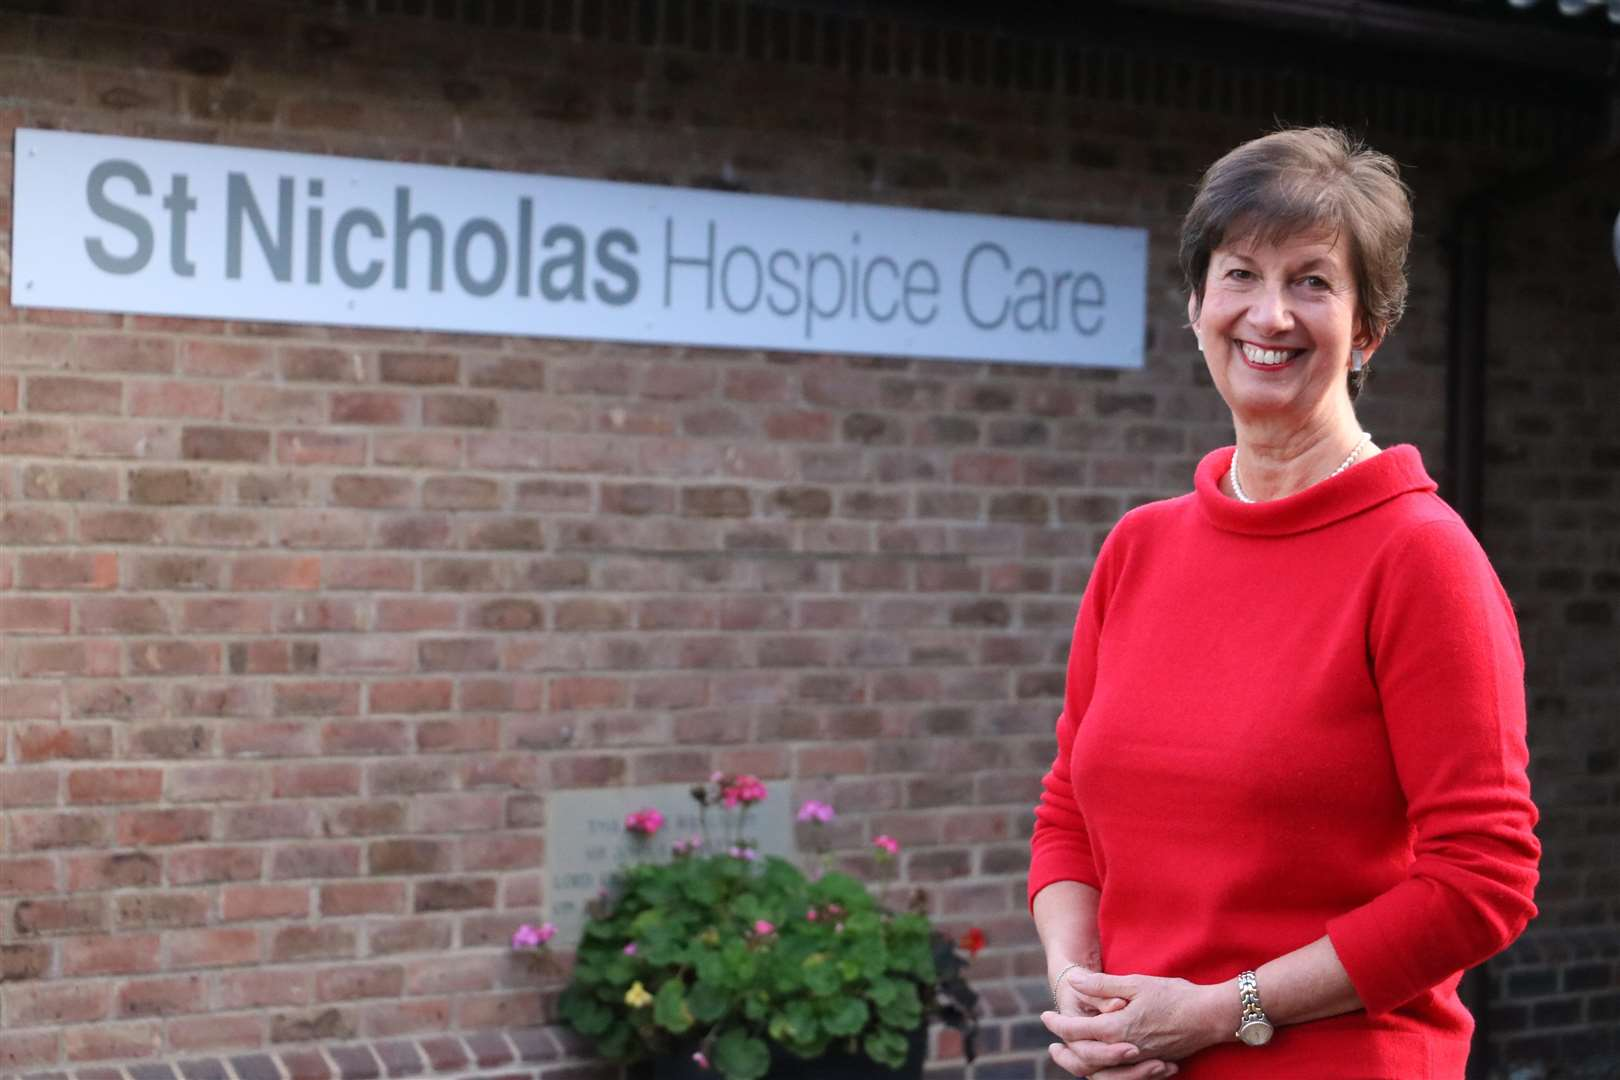 Barbara Gale, chief executive of St Nicholas Hospice Care, awardedan MBE in recognition of her services to hospice care and the West Suffolk community. (6308042)